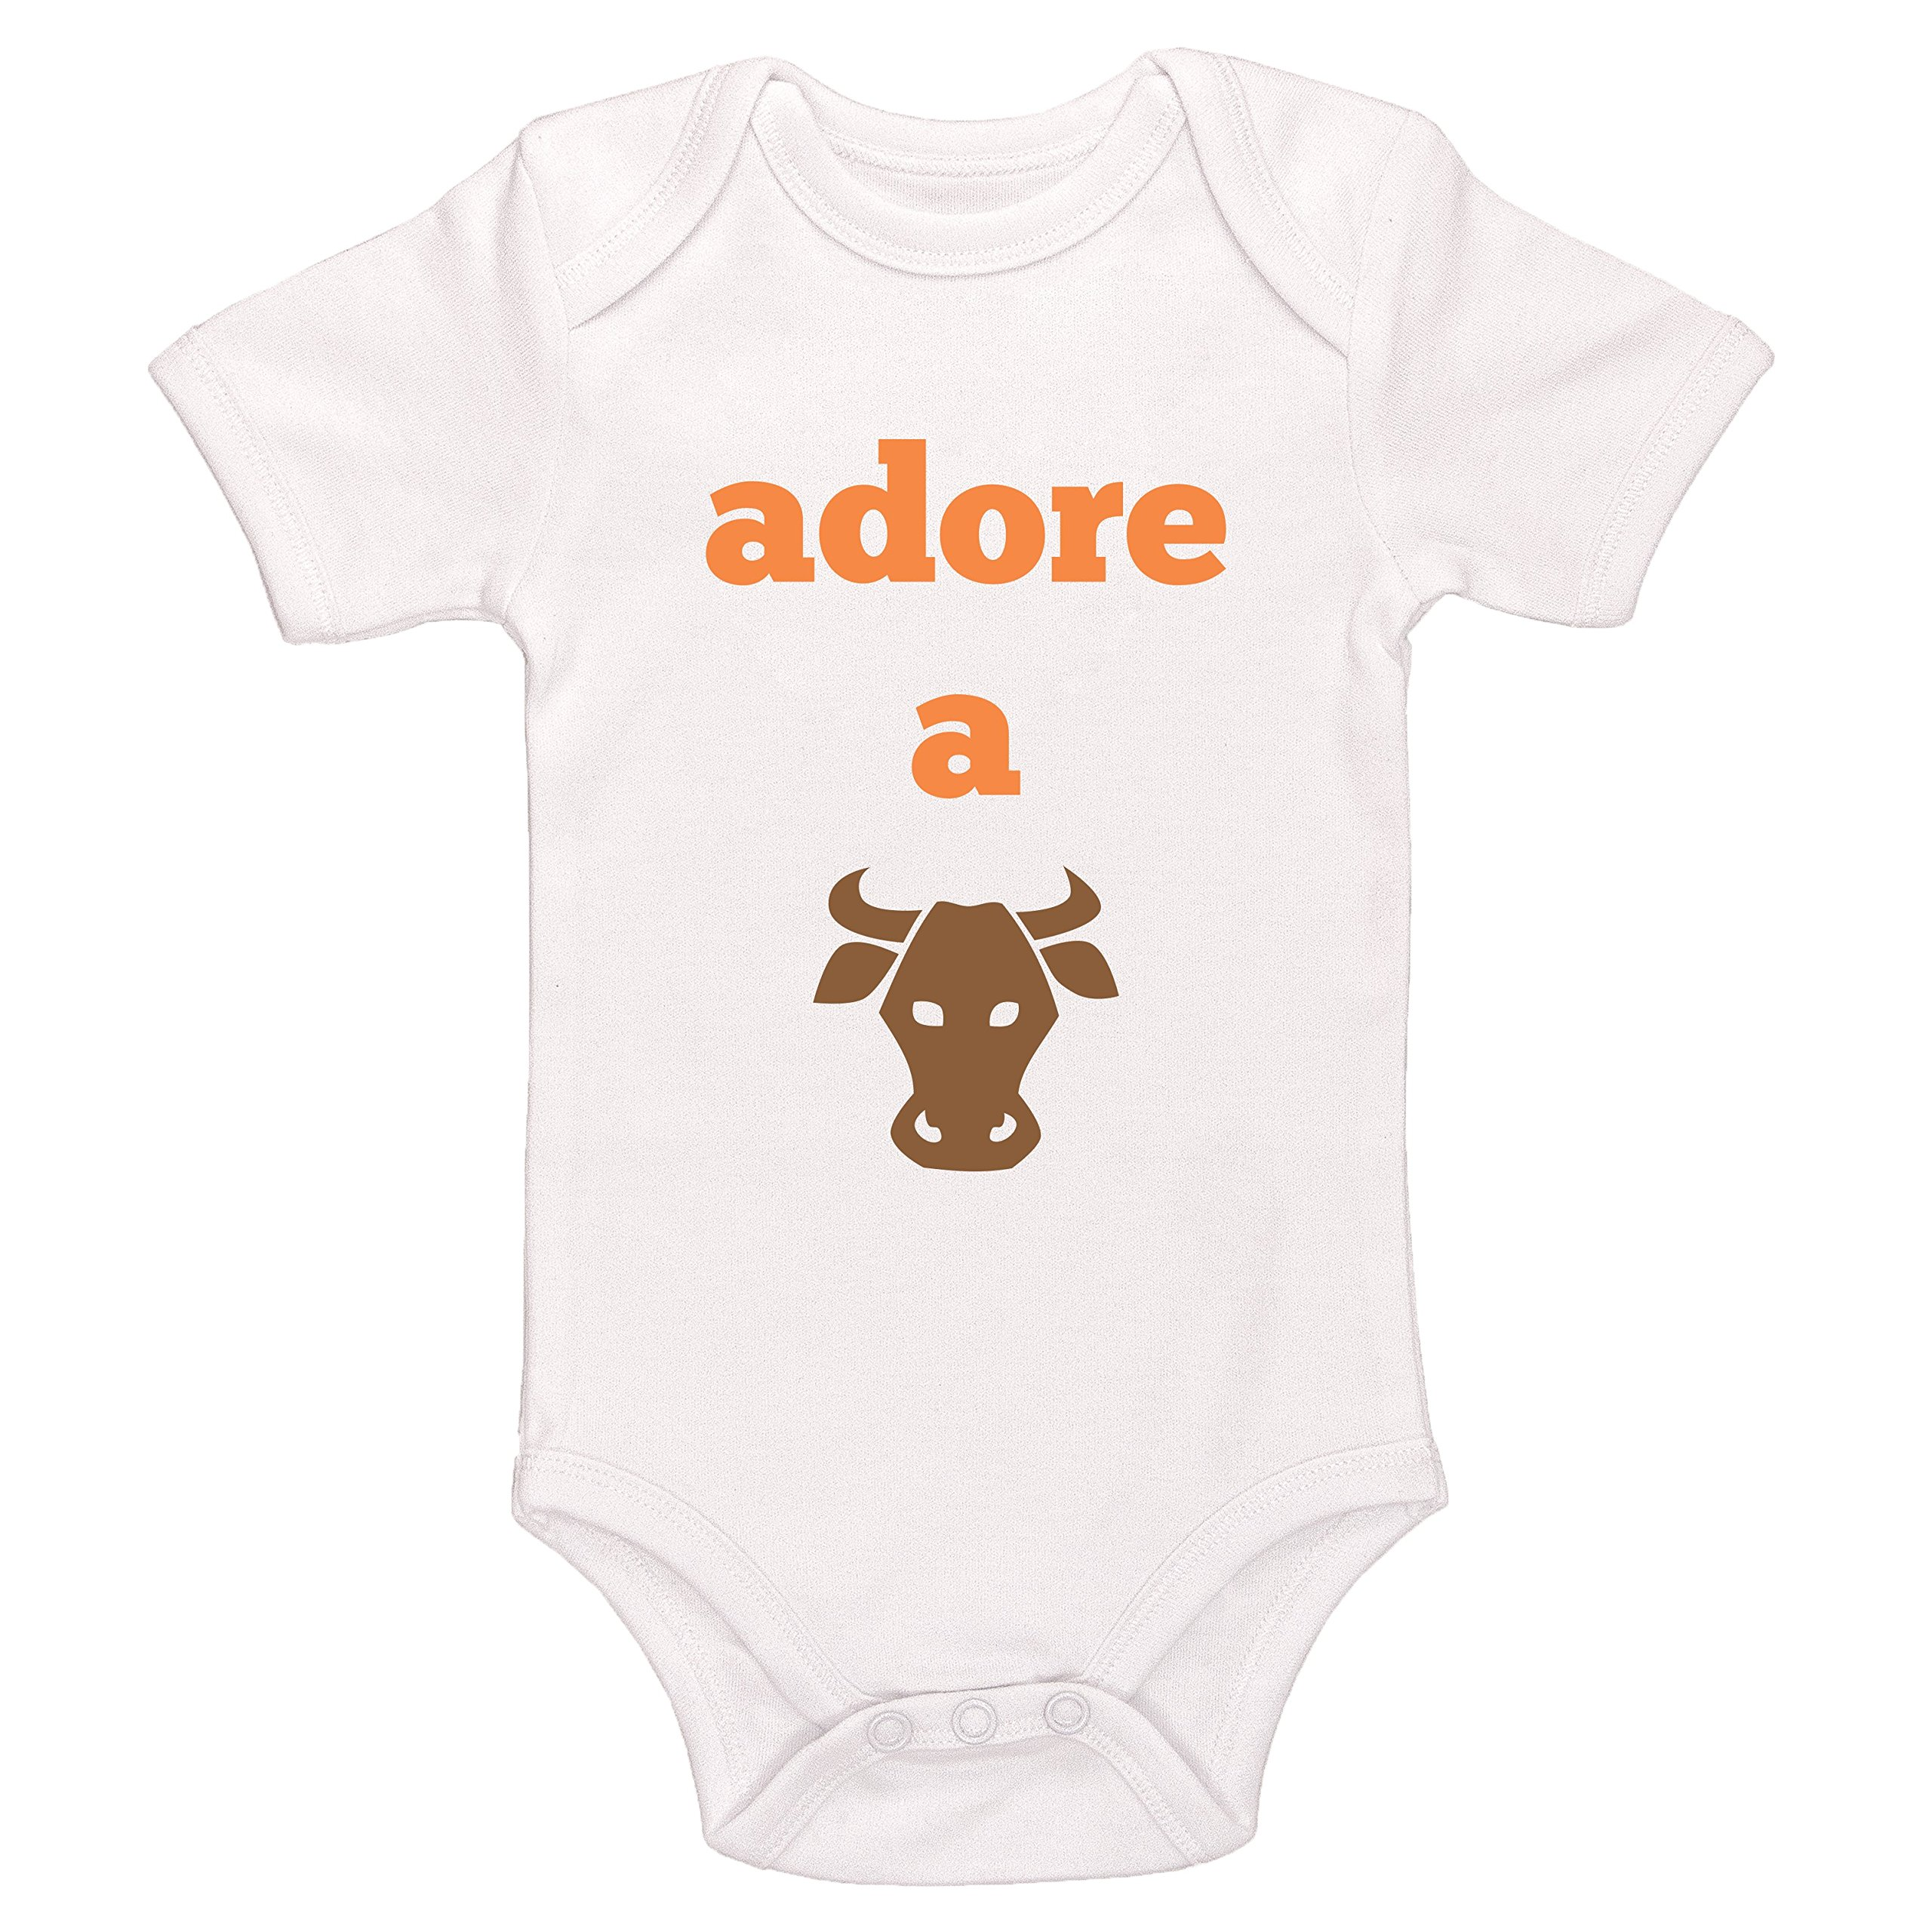 Starlight Baby Adore A Bull Bodysuit (White, 0-3 Months)